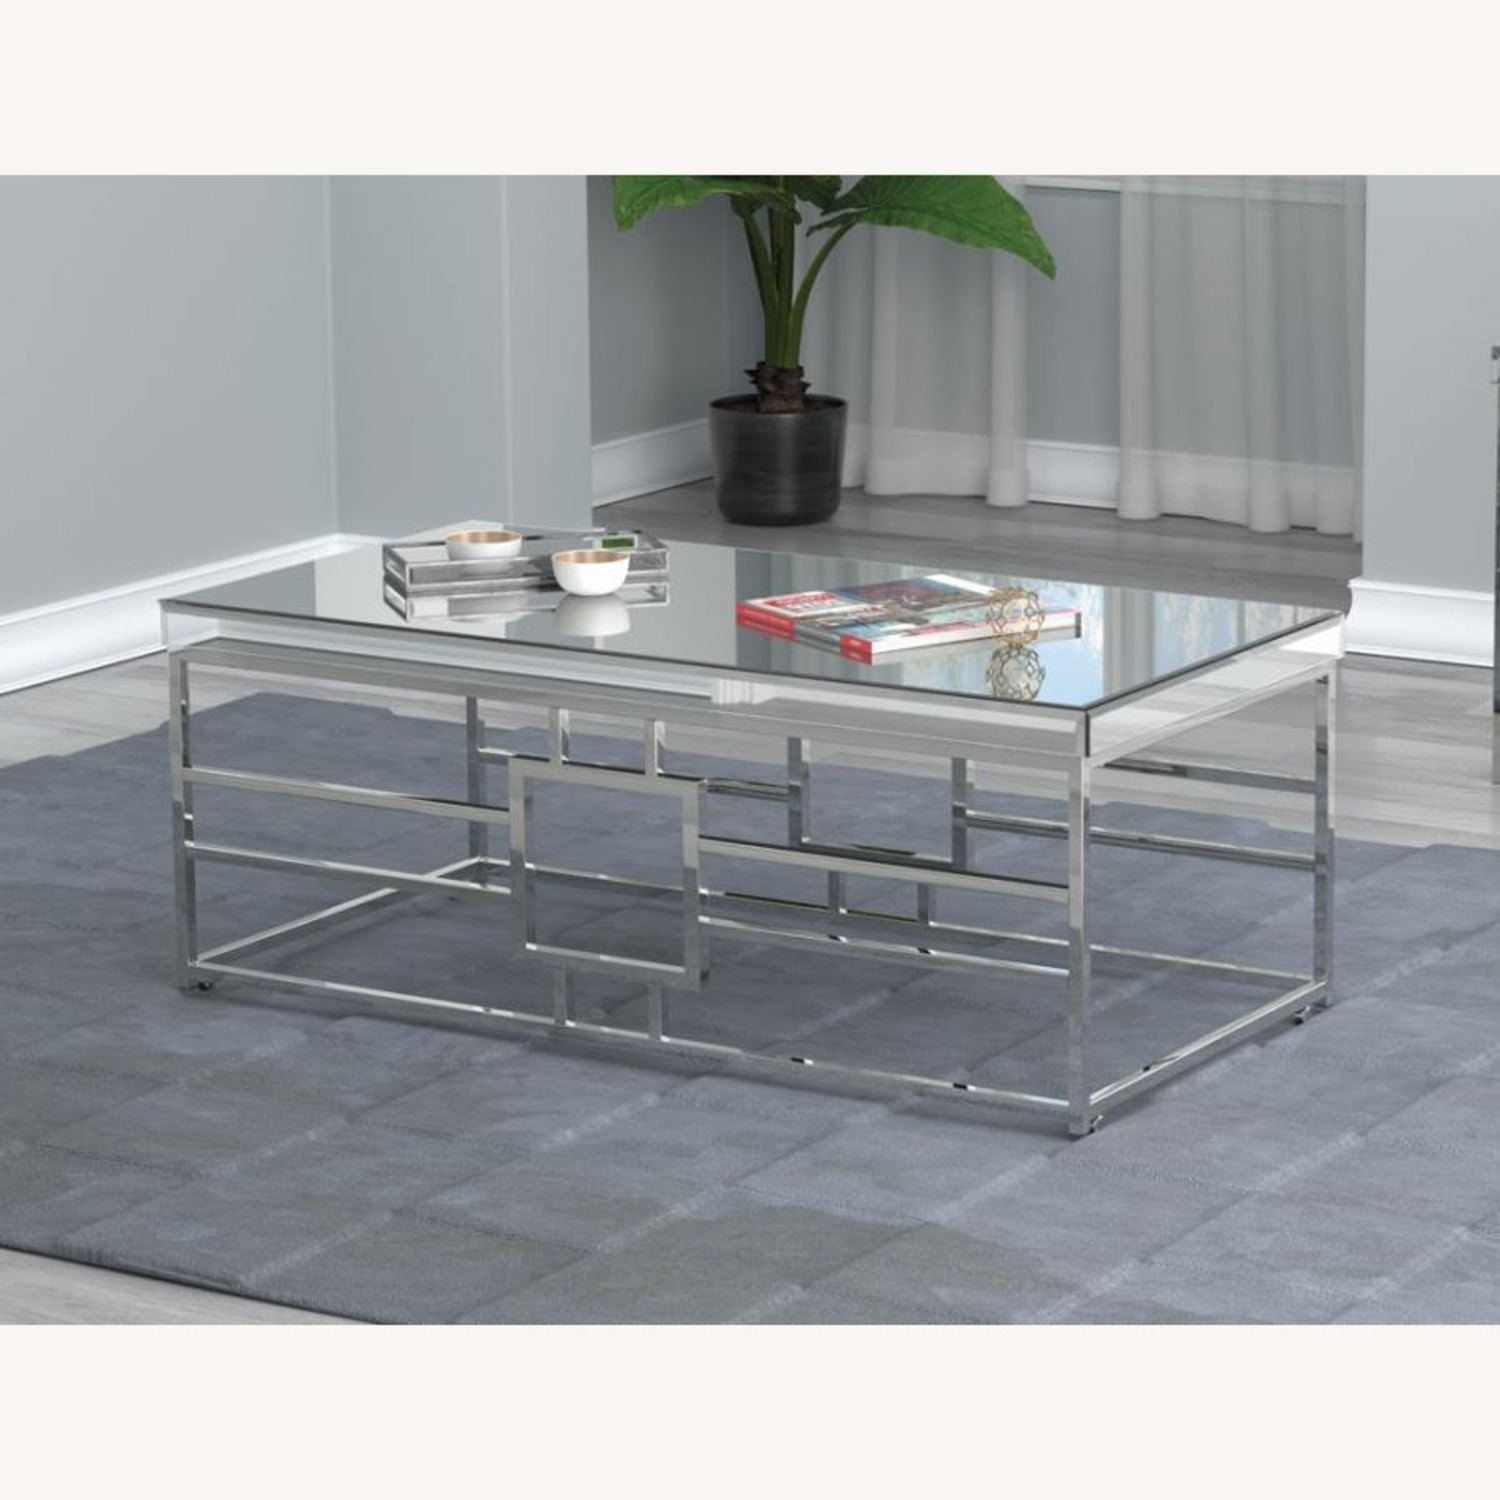 Modern Coffee Table In Chrome Finish Frame - image-3